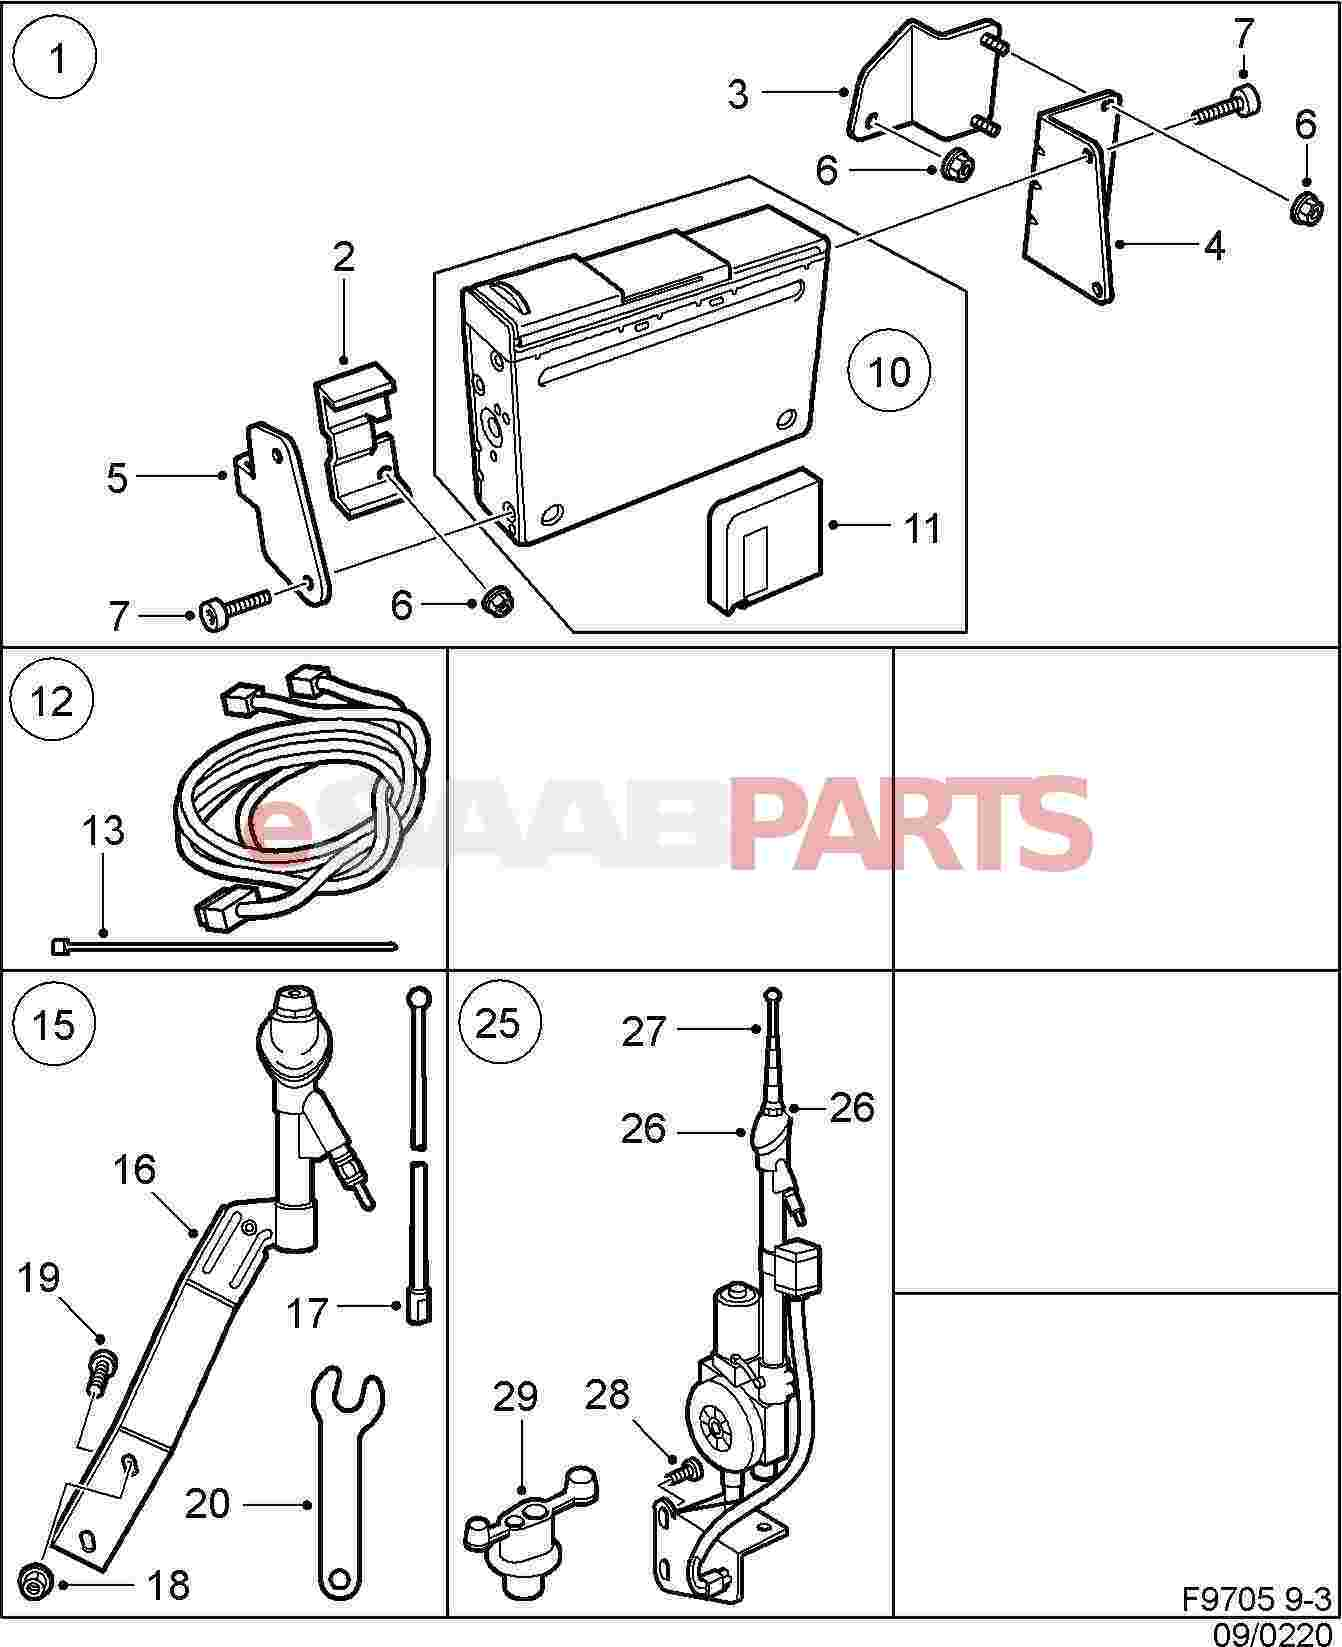 2003 saab 9 3 radio wiring diagram